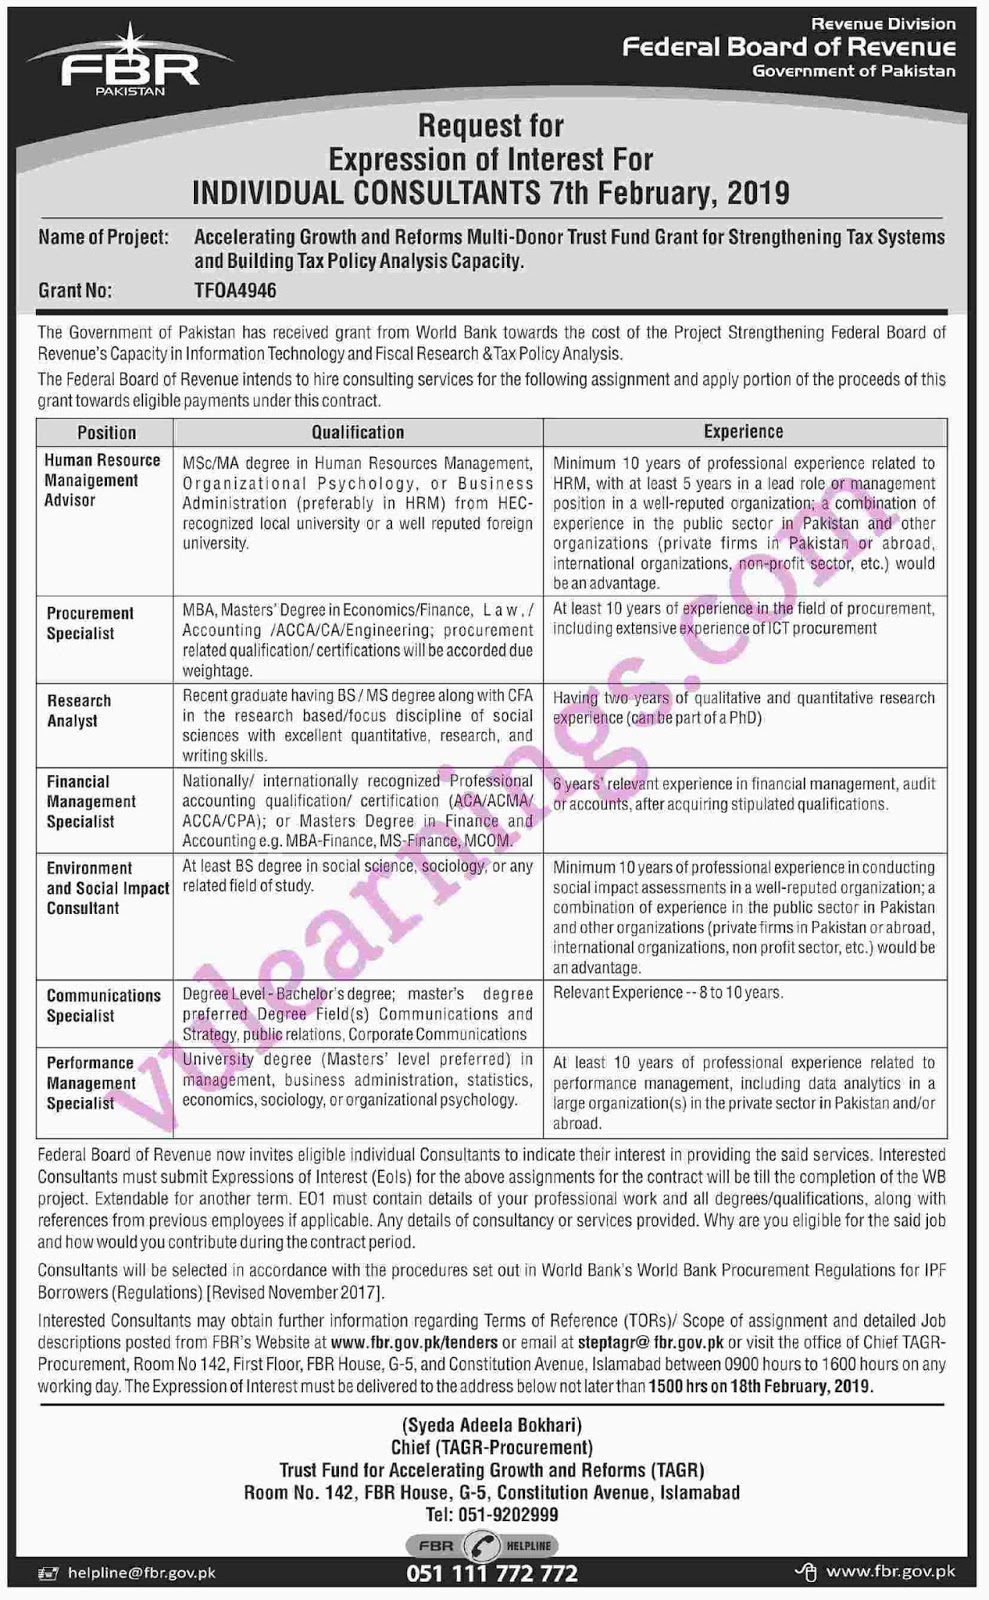 JOB IN FEDERAL BOARD OF REVENUE GOVERNMENT OF PAKISTAN